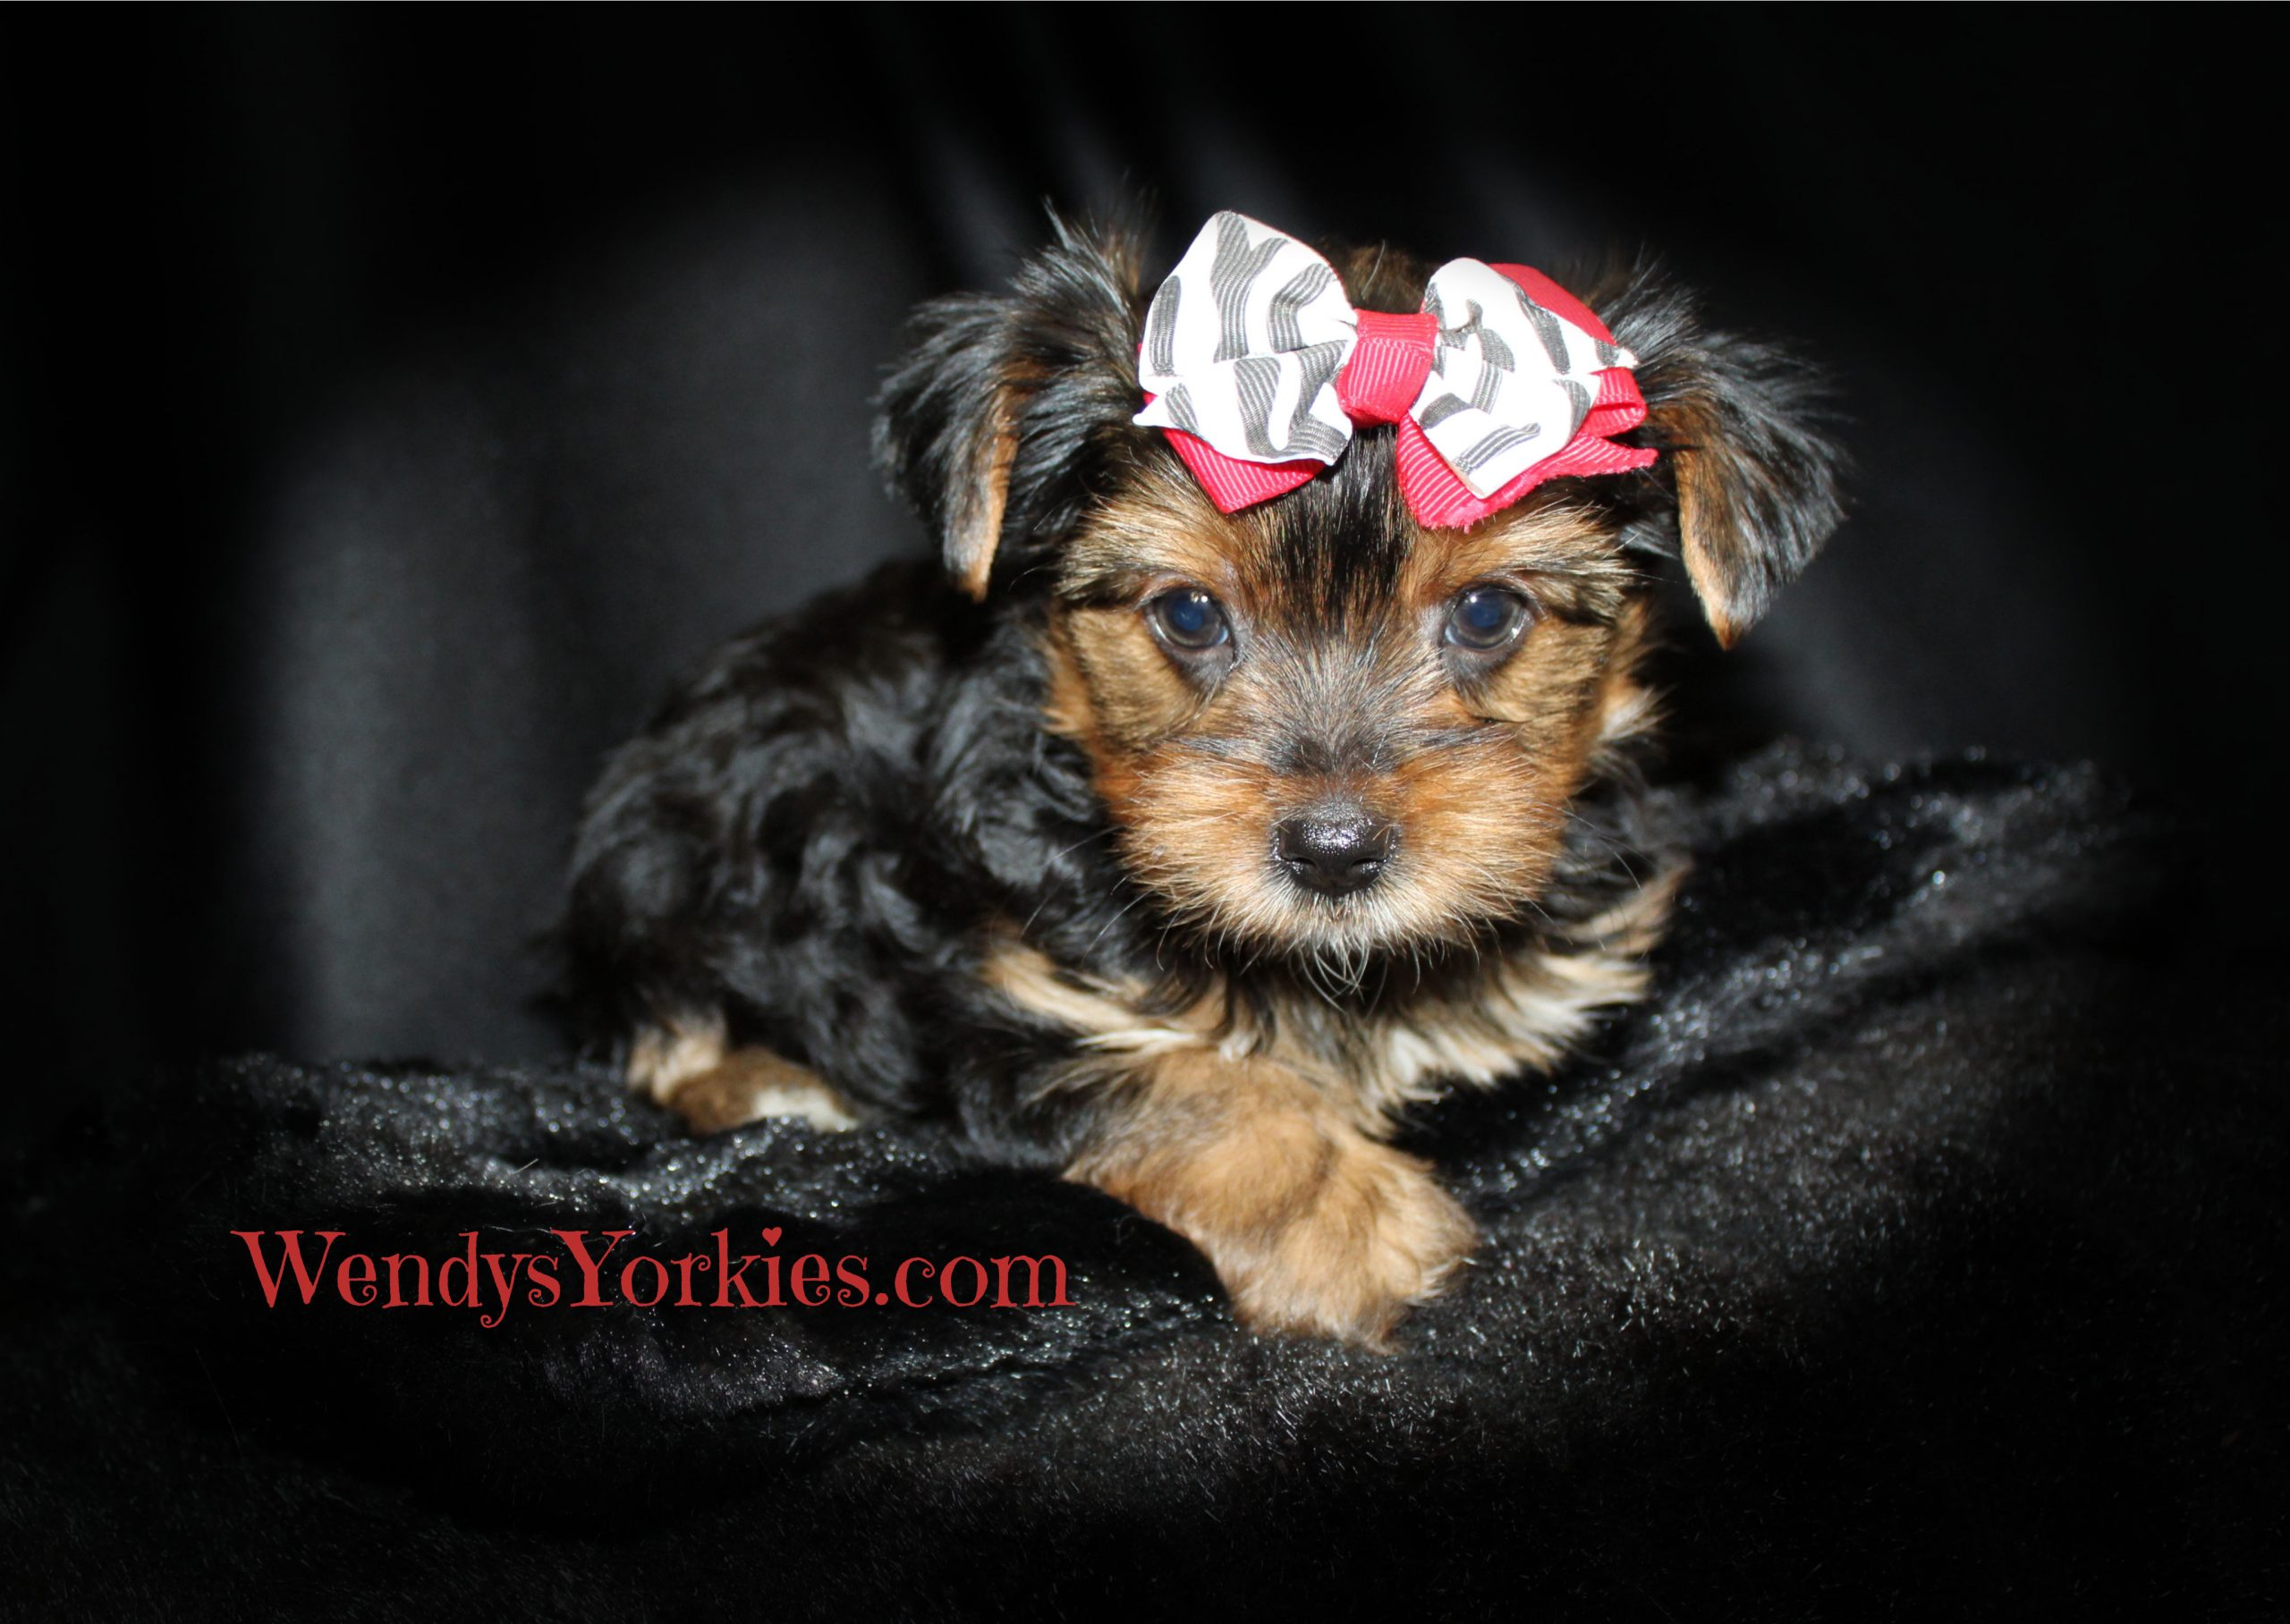 Male Yorkie puppy for sale, Hottie M1, WendysYorkies.com